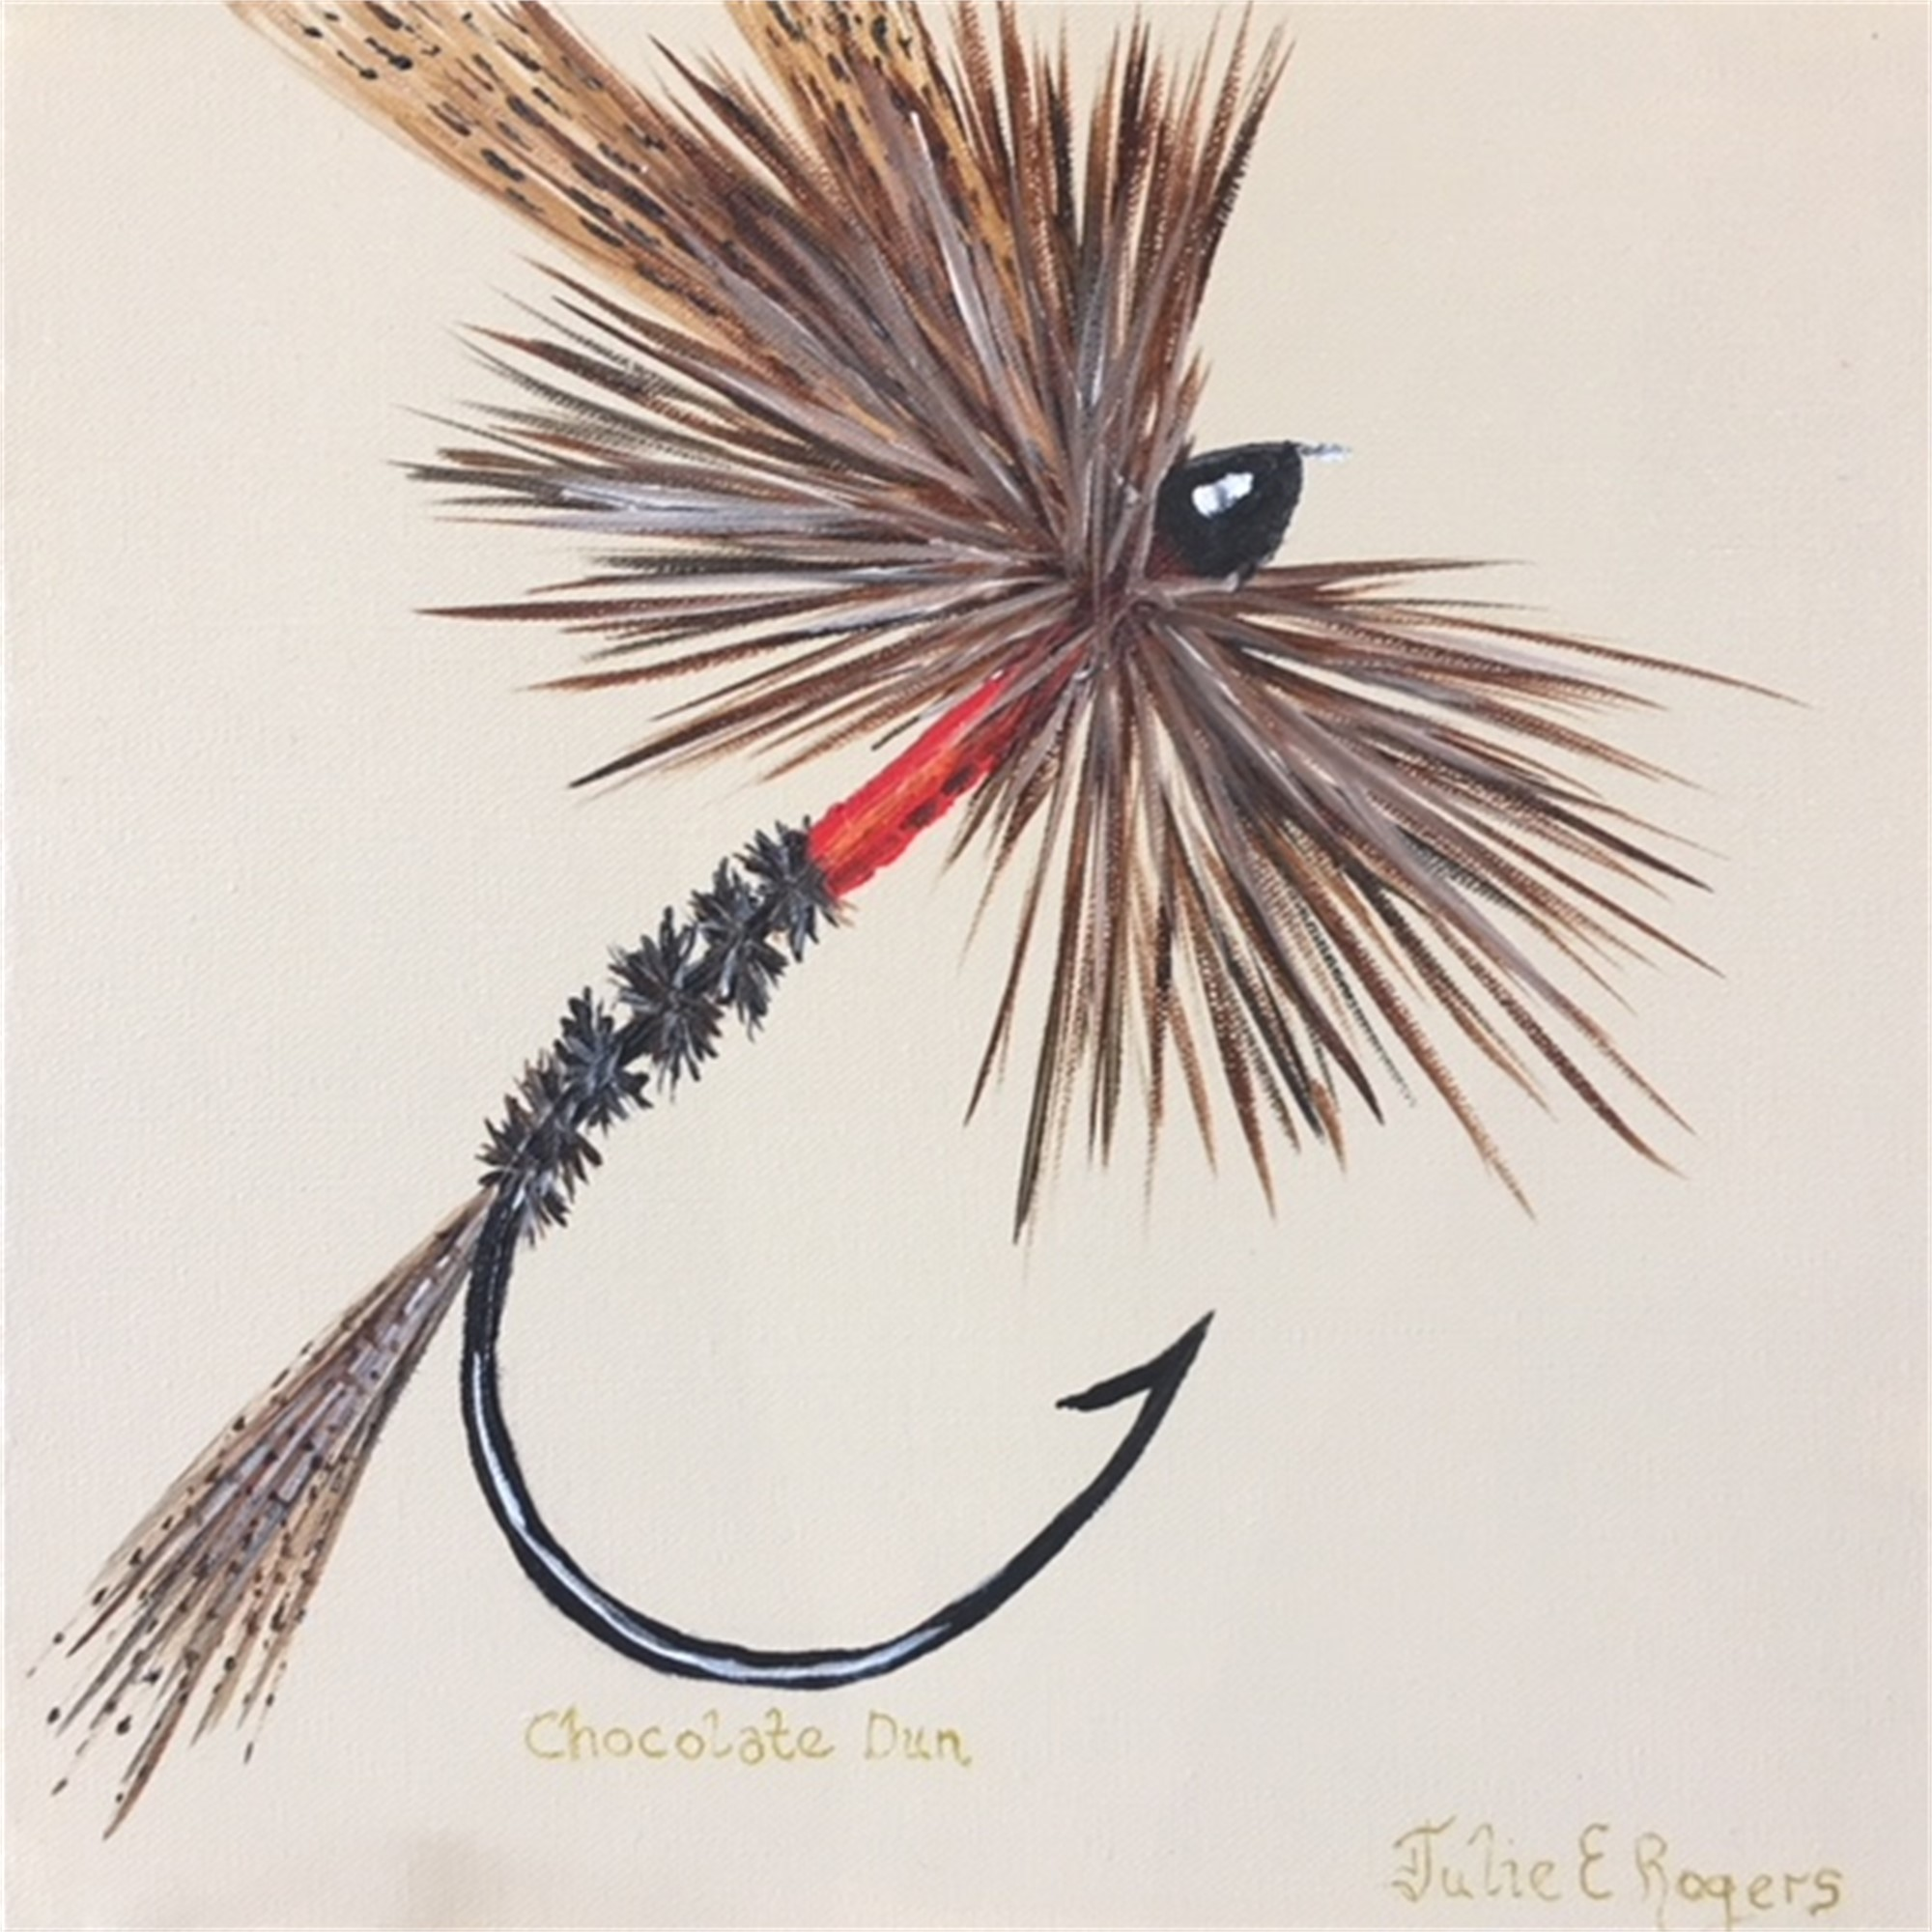 Chocolate Dun Dry Fly by Julie Rogers